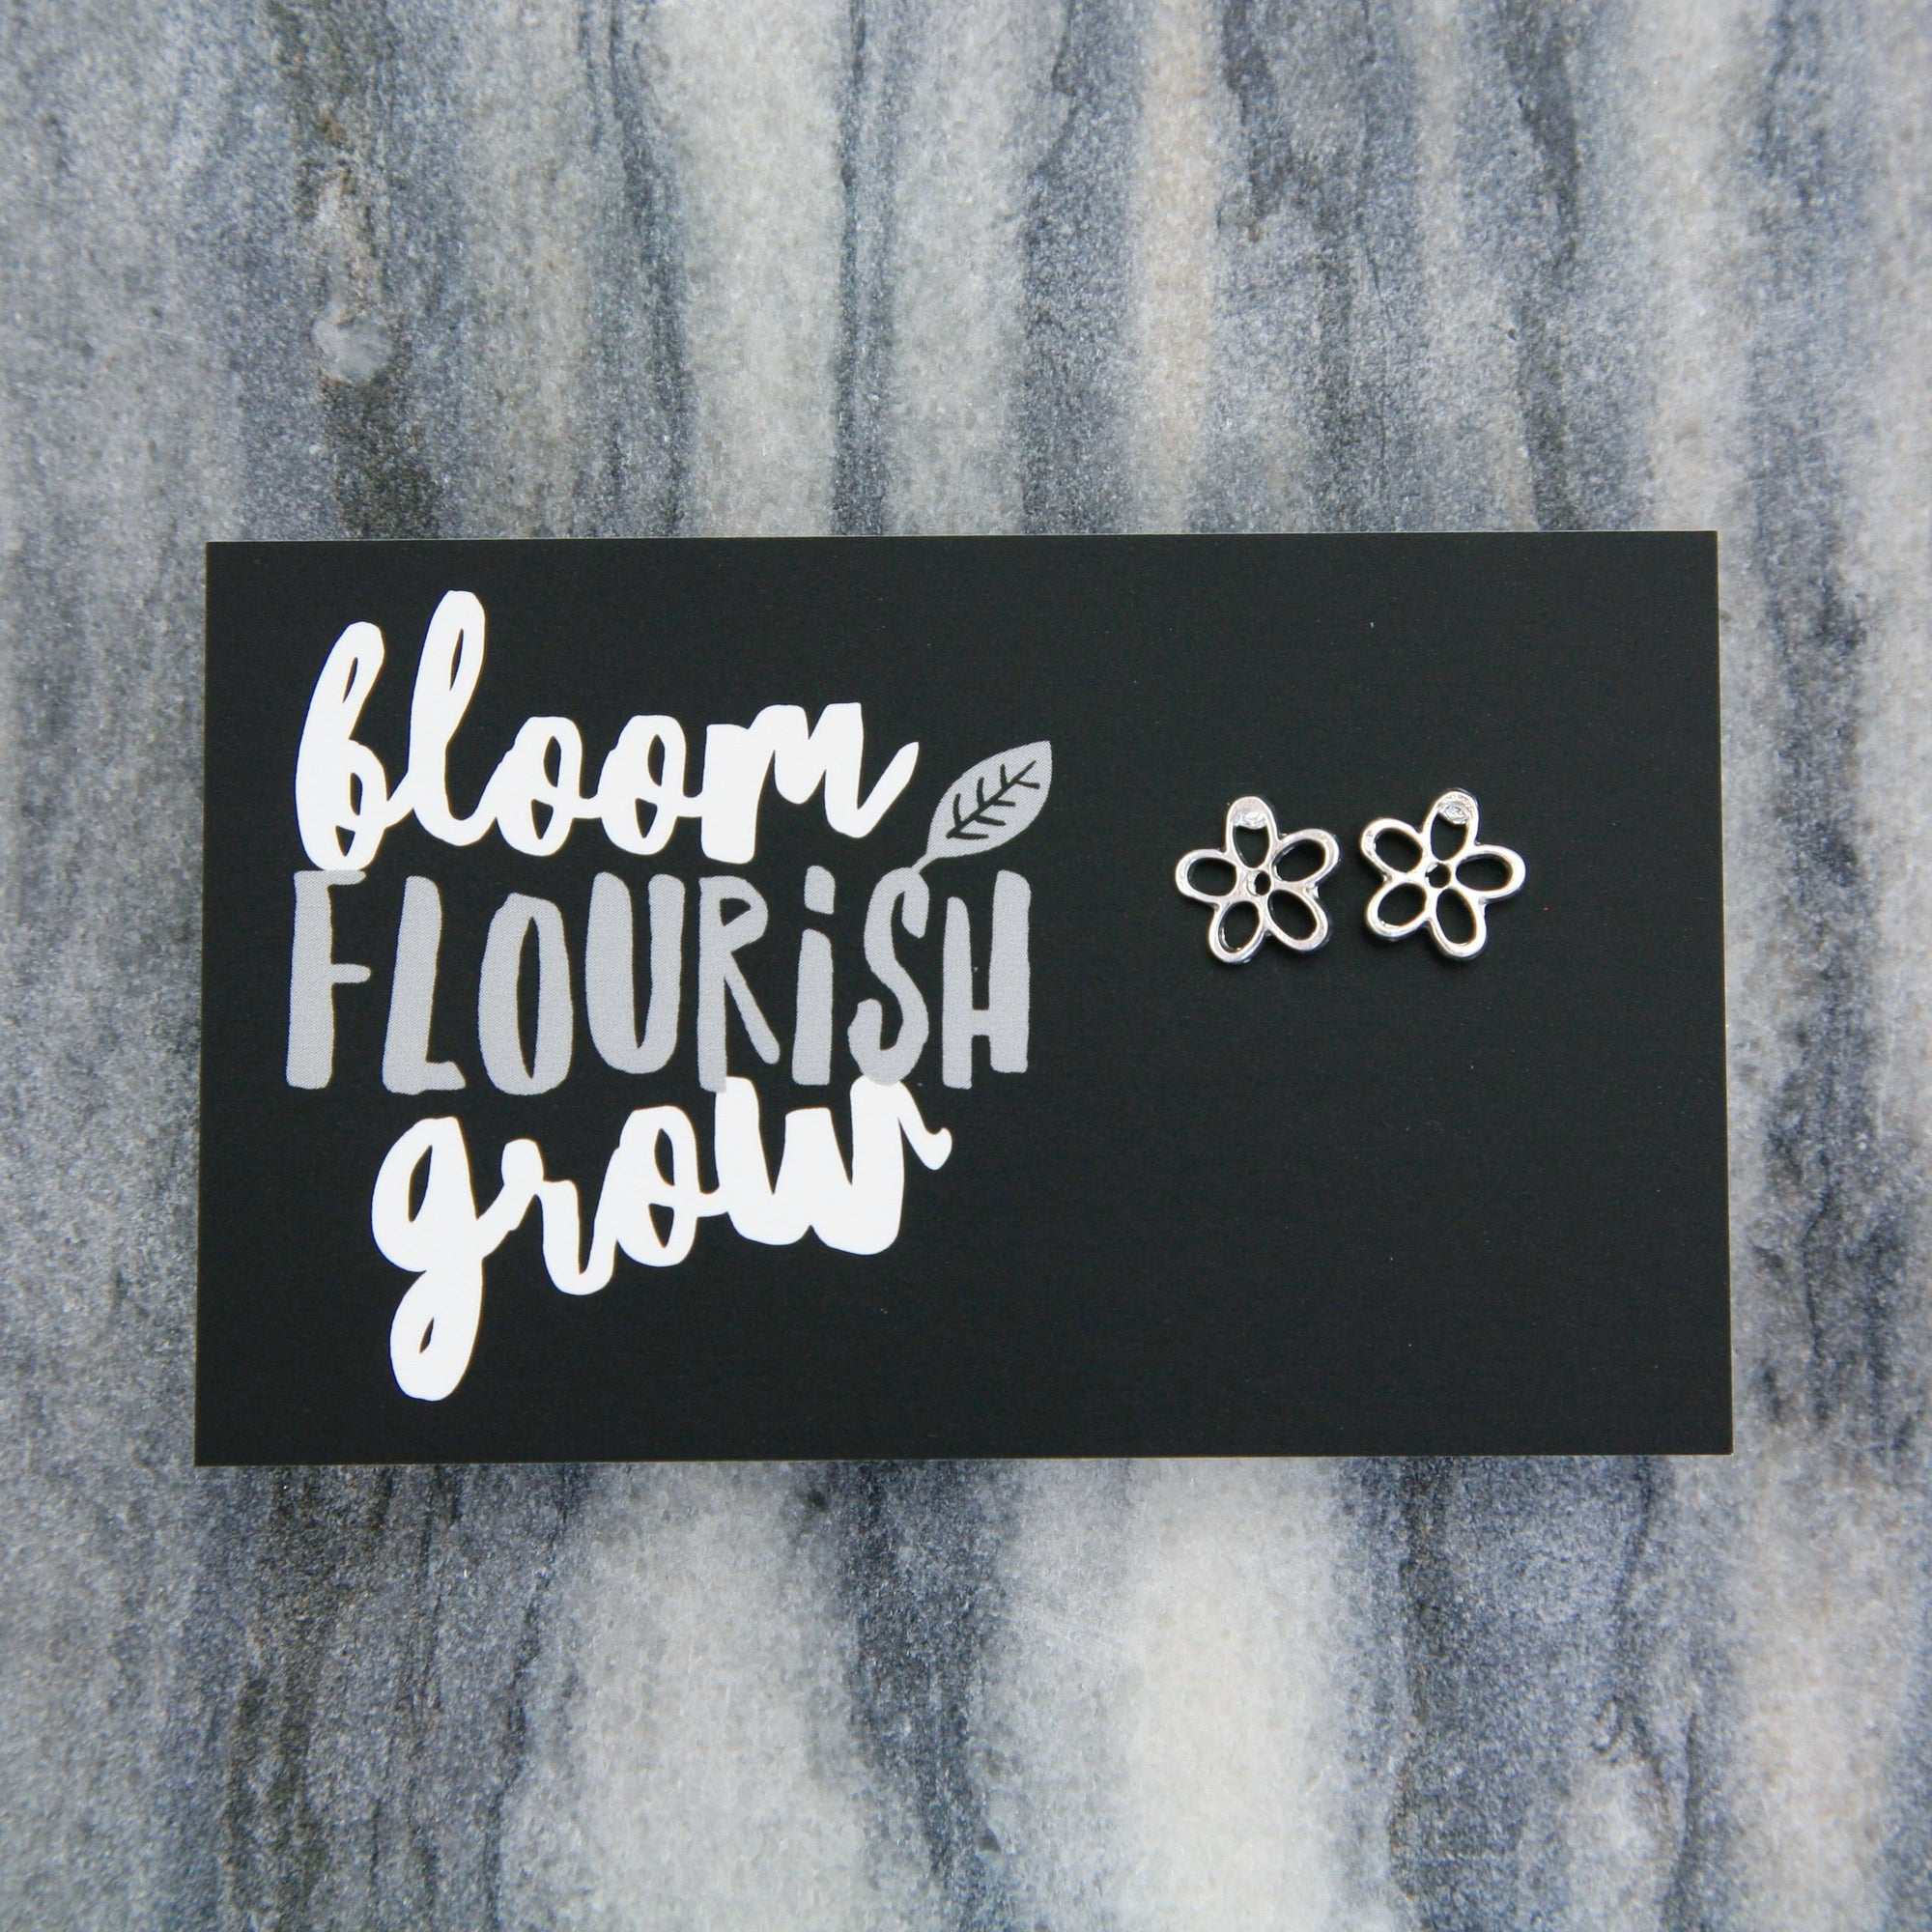 Forever Spring - BLOOM FLOURISH GROW! Daisy Earring Studs - Silver (9717)